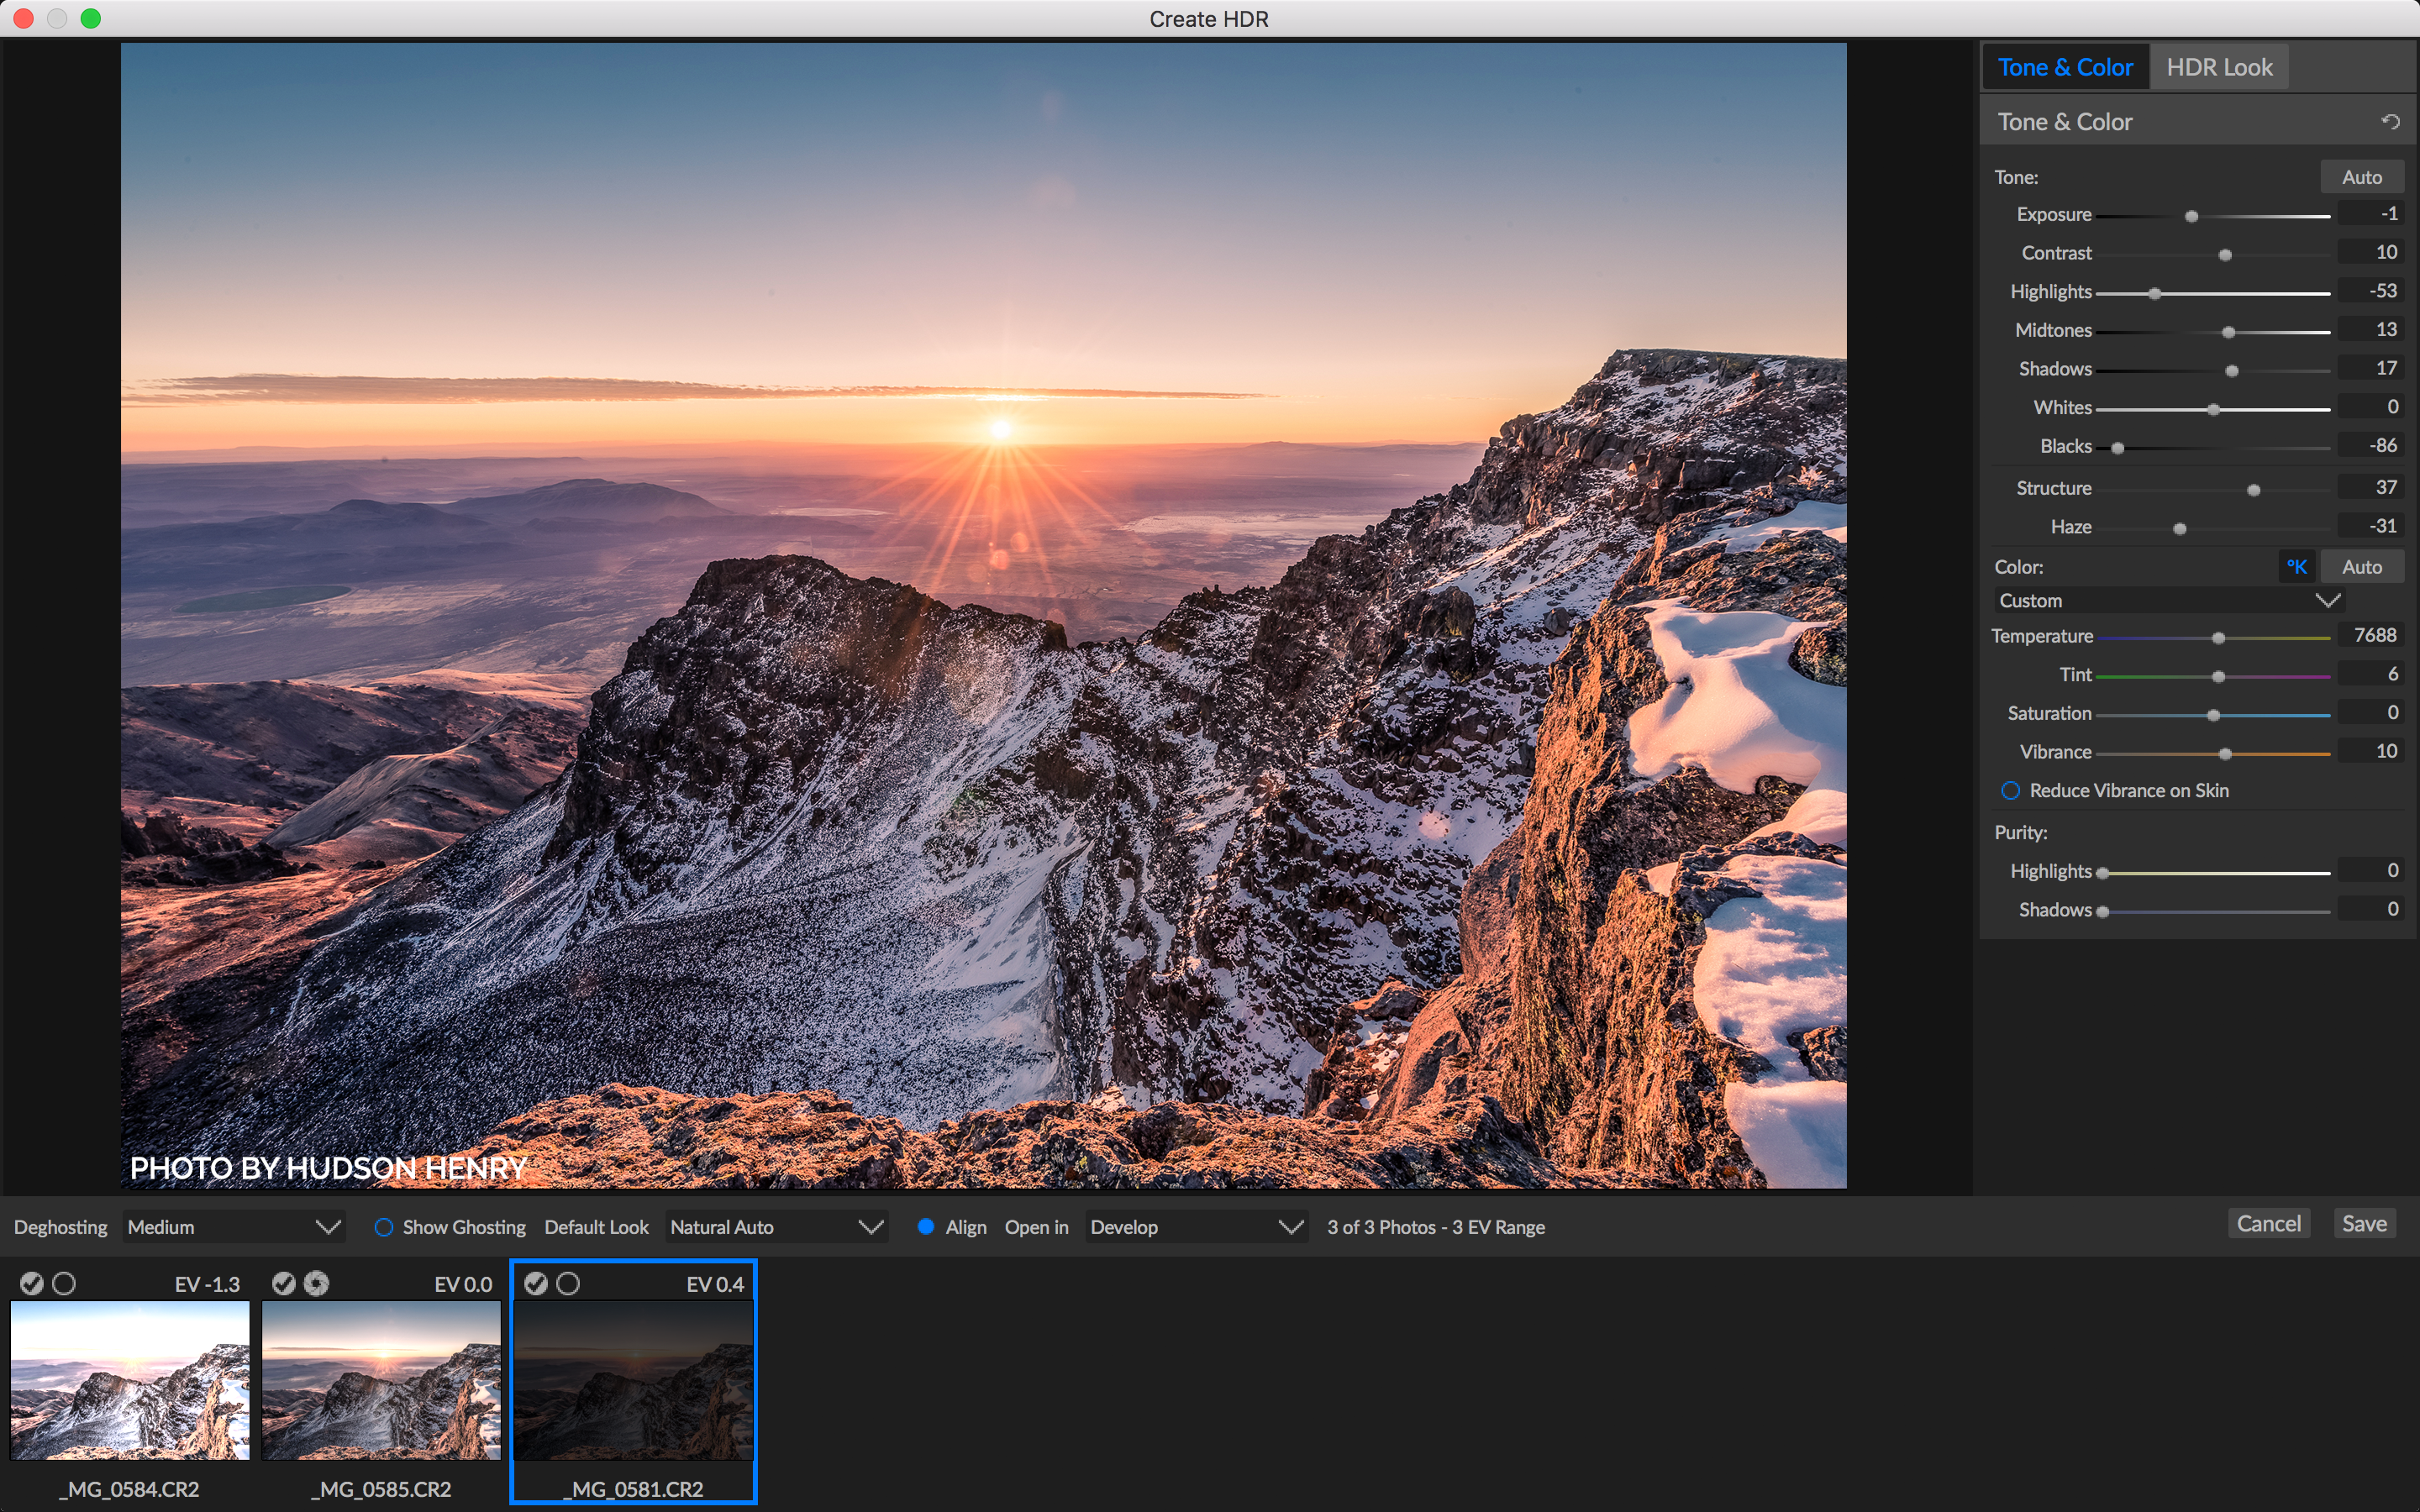 ON1 Photo RAW 2019 – An All-New Photo Editing Experience Now